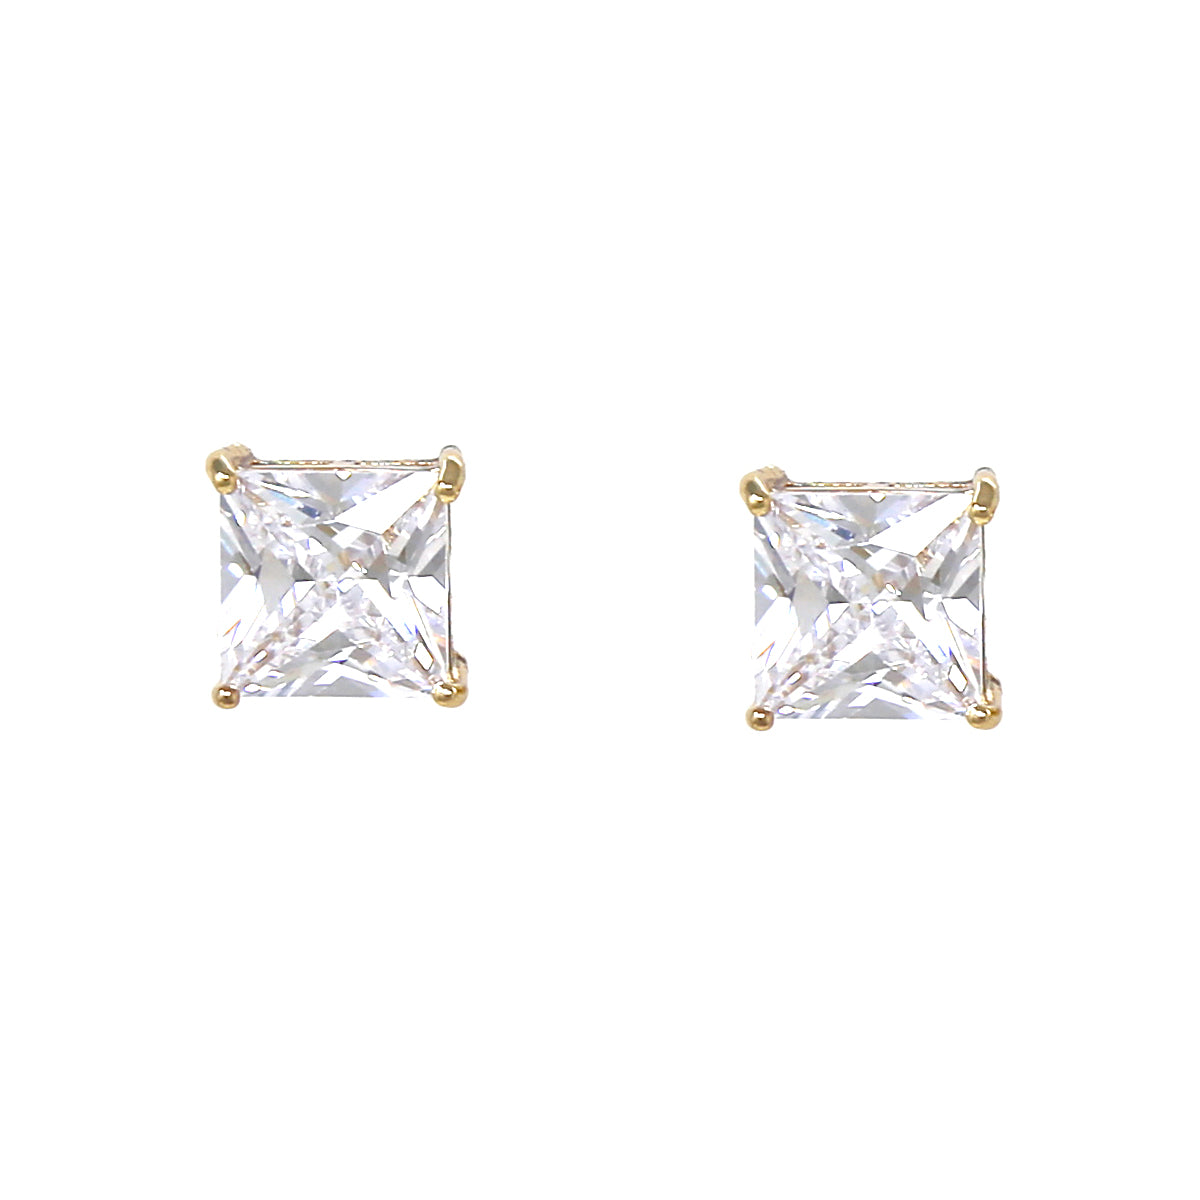 Square Cubic Zirconia Stud Earrings (13 mm)